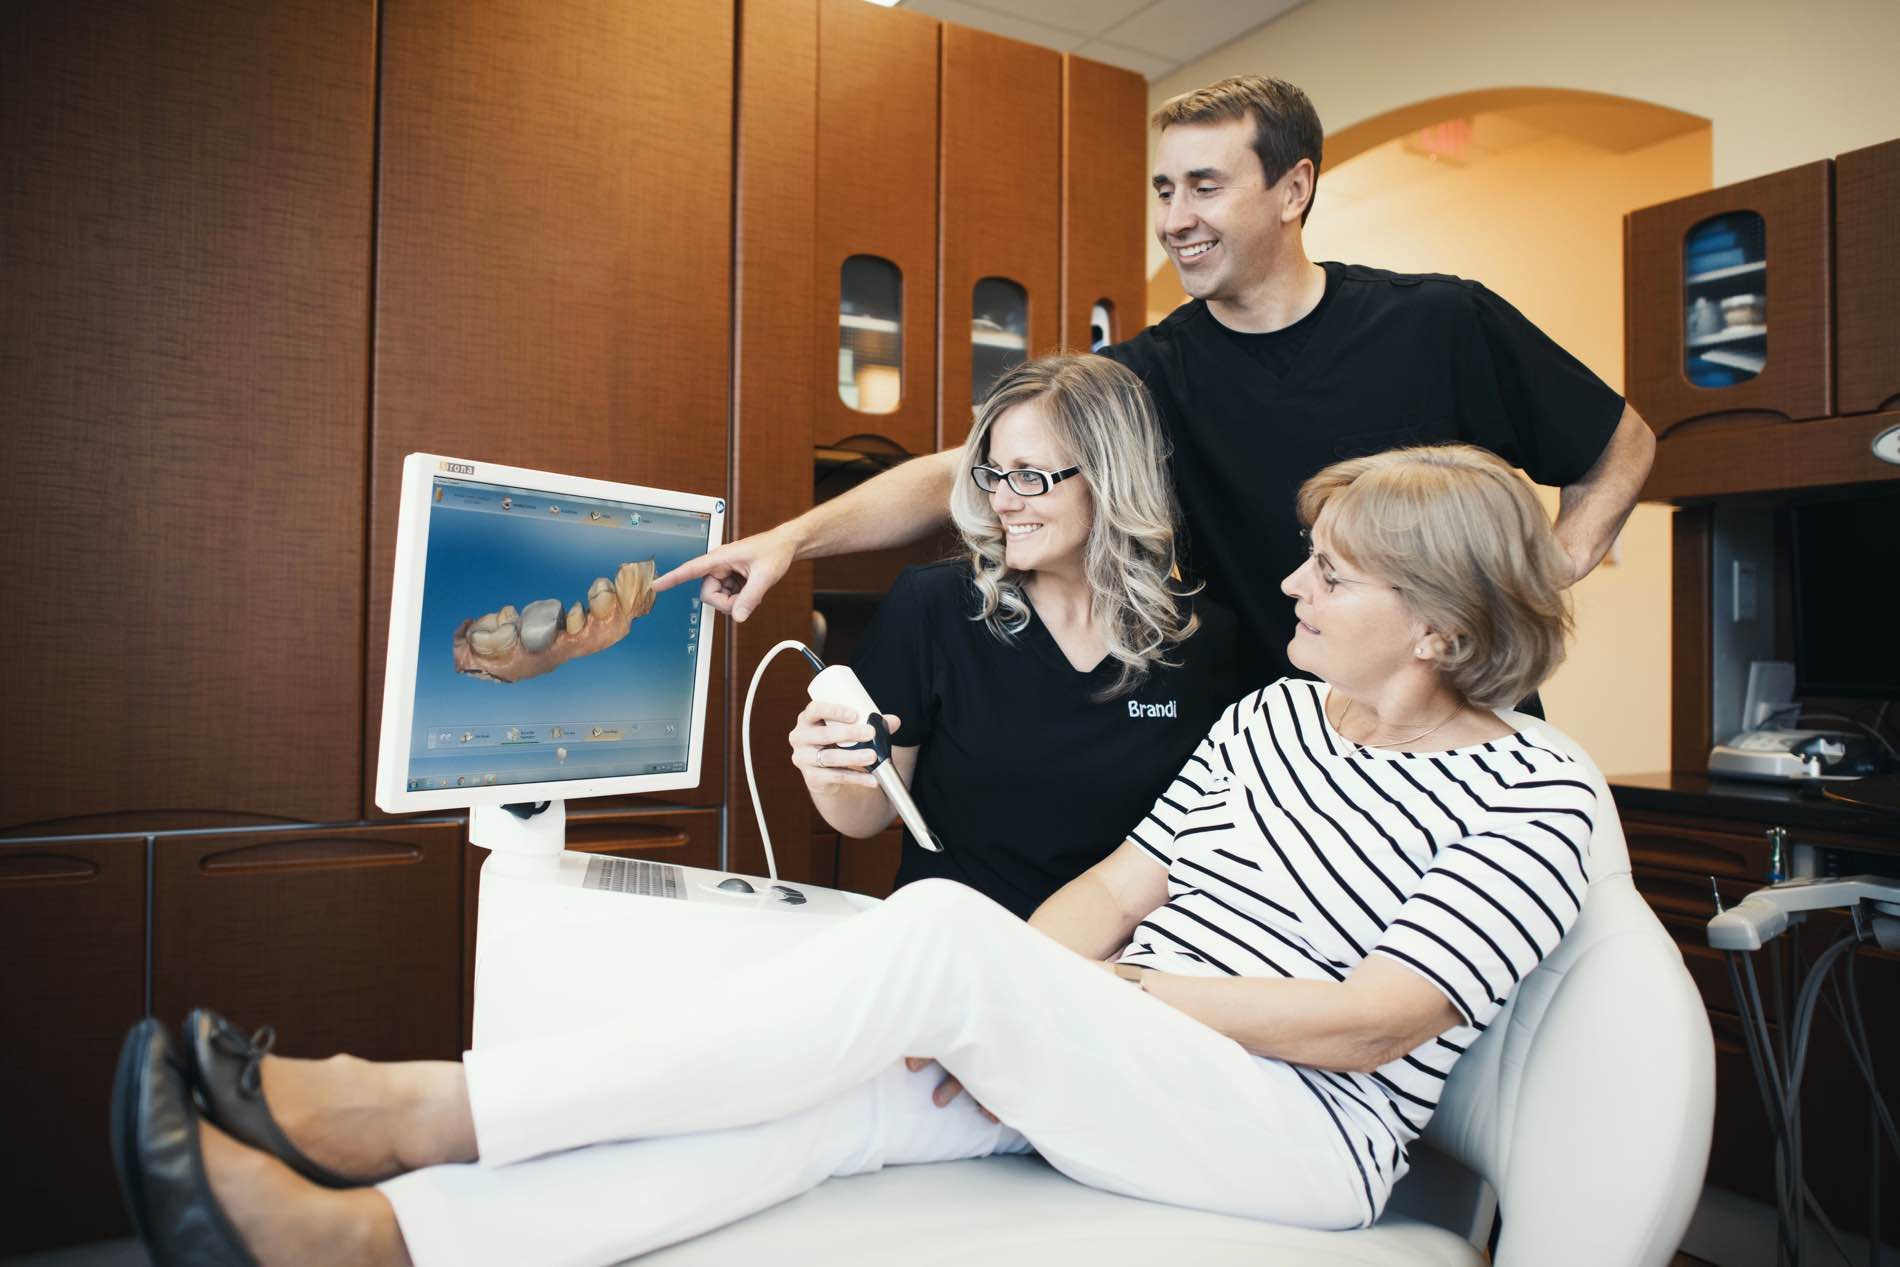 Photo of Dr. Pell pointing at a dental scan on a monitor while a patient and team member observe